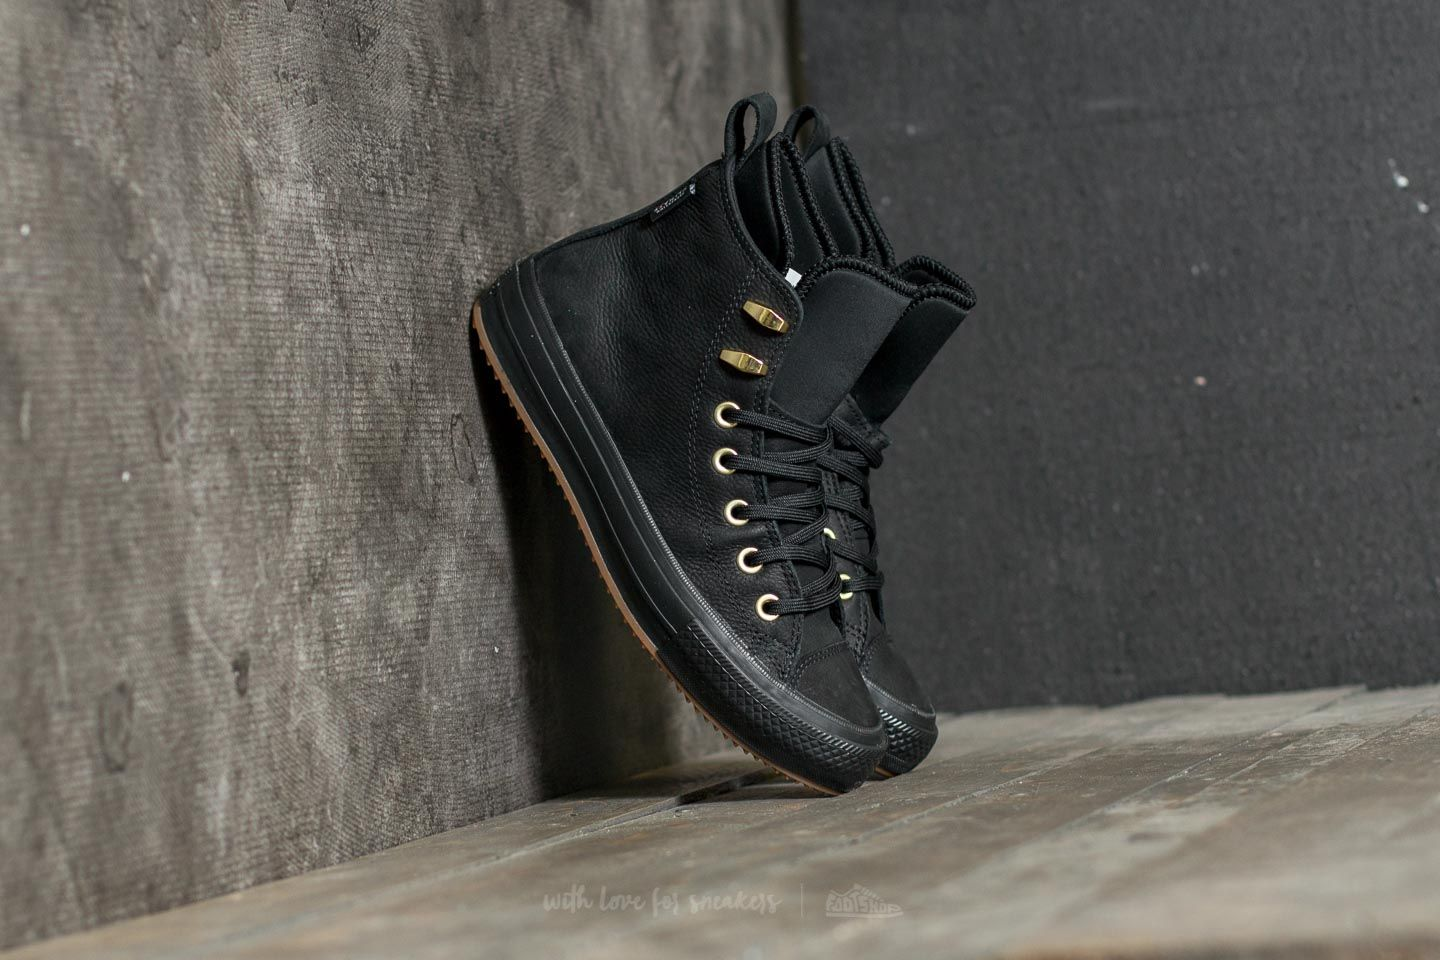 ac952e575d4f Converse Chuck Taylor All Star WP Boot Hi Black  Black  Brass ...